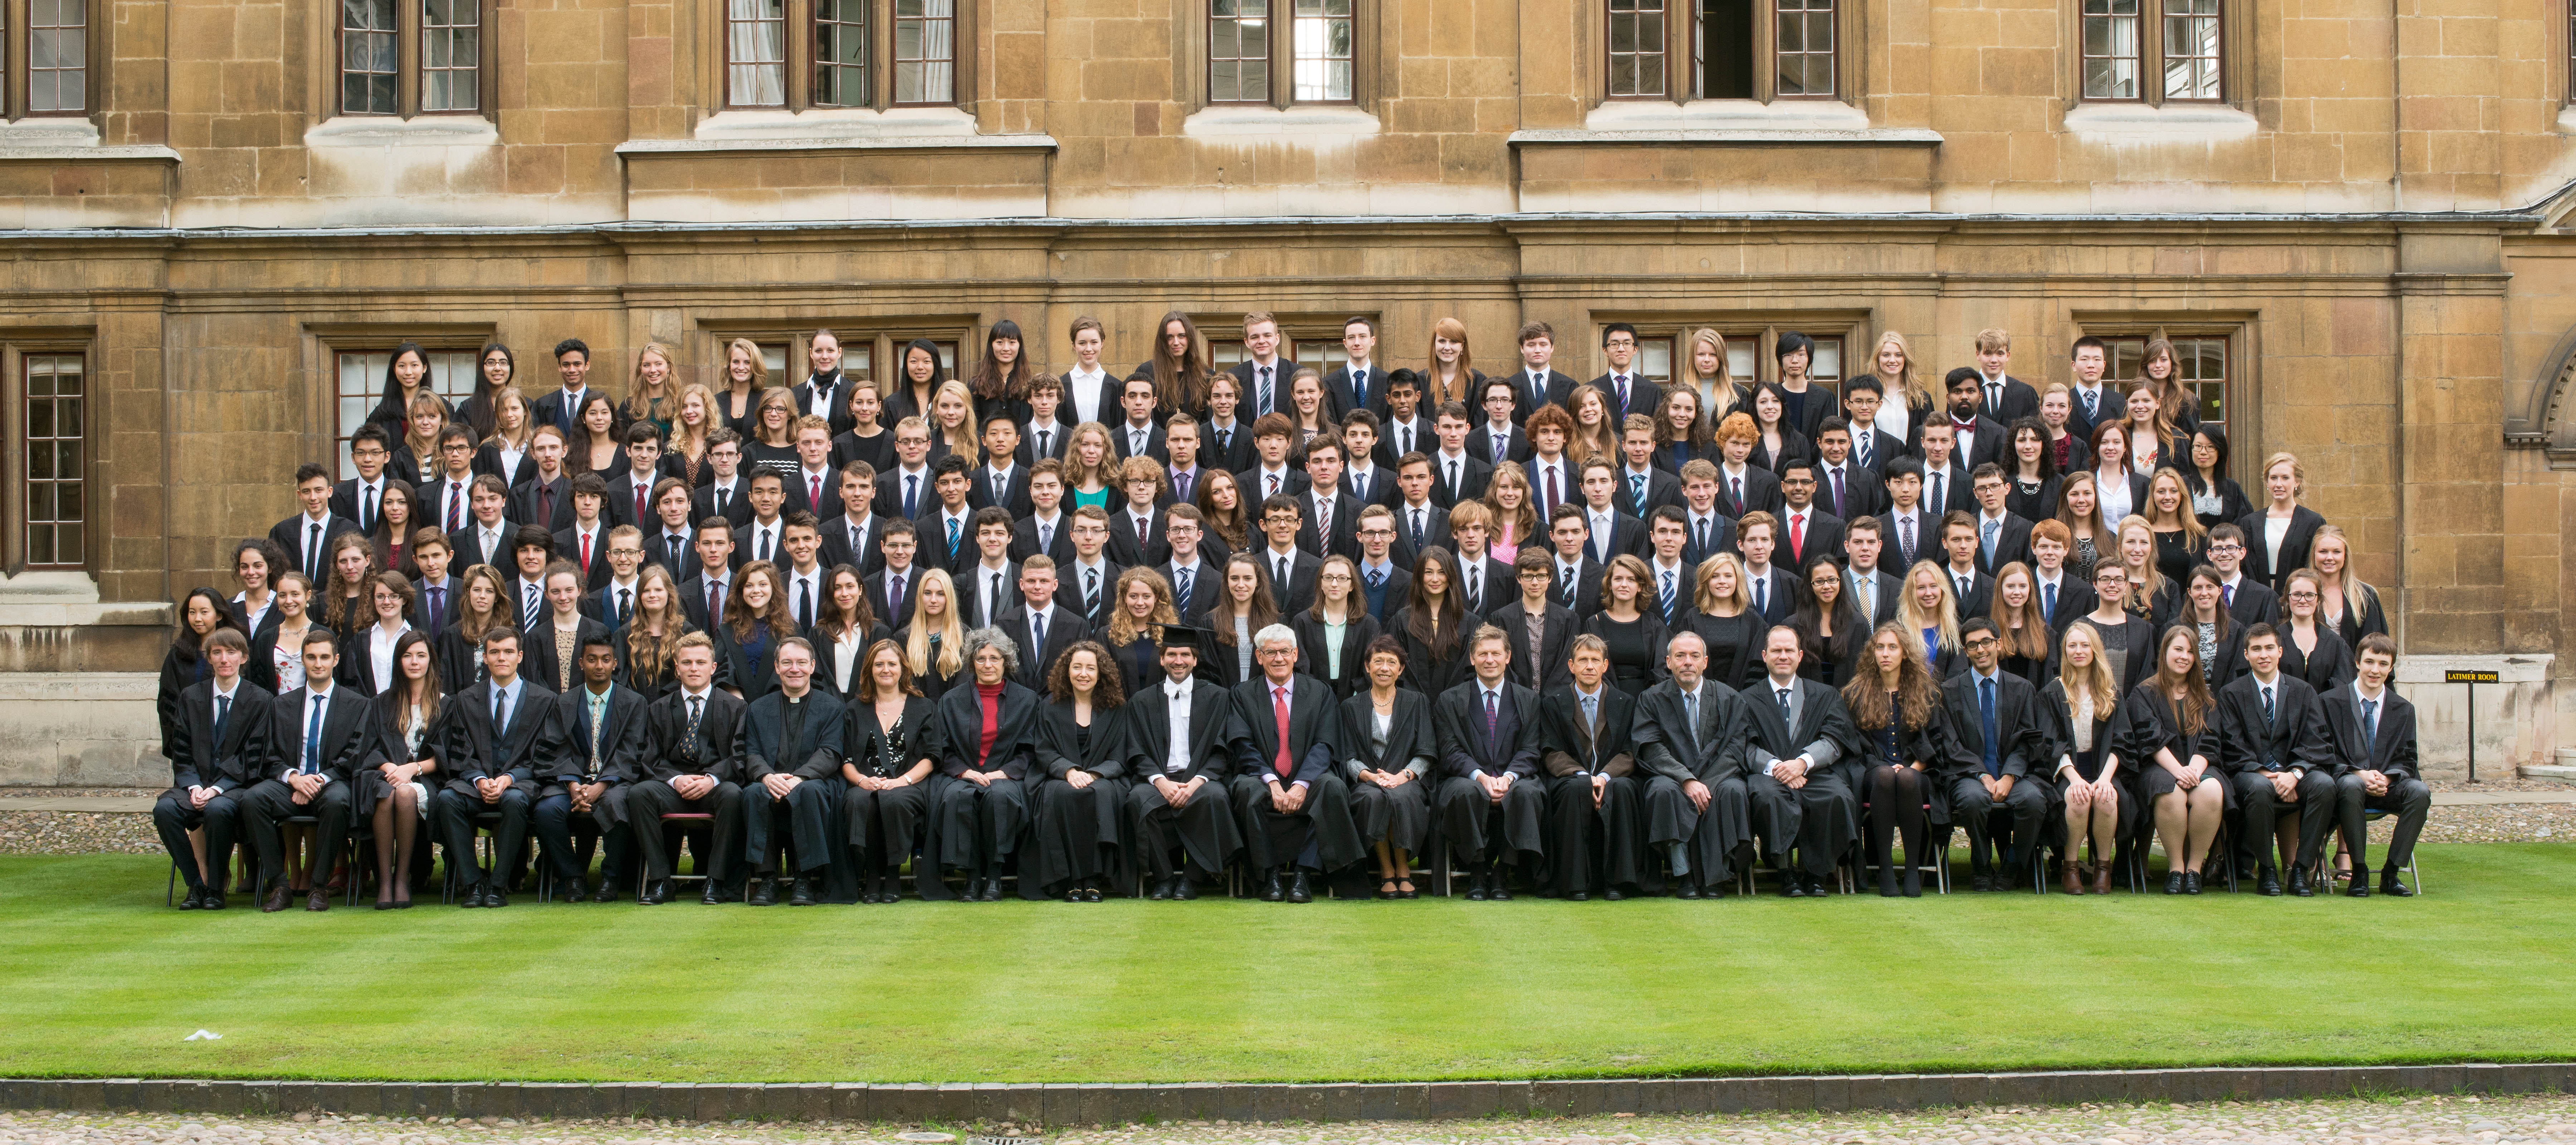 clare college cambrdige master papers com